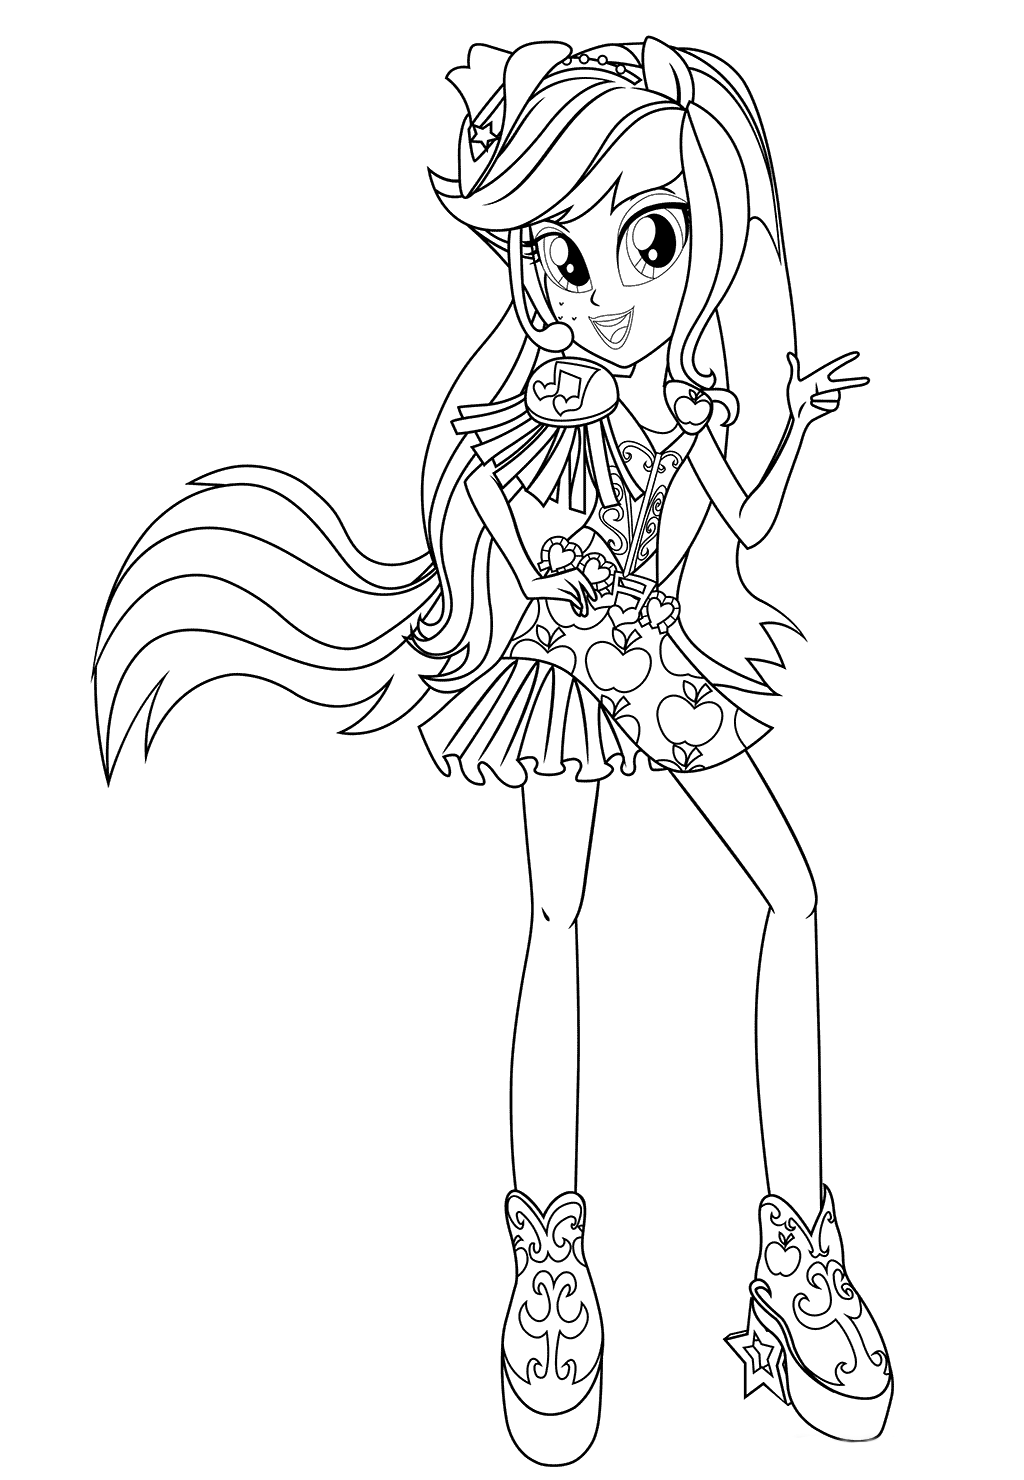 applejack equestria girls coloring pages equestria girls coloring pages print free applejack pages equestria girls coloring